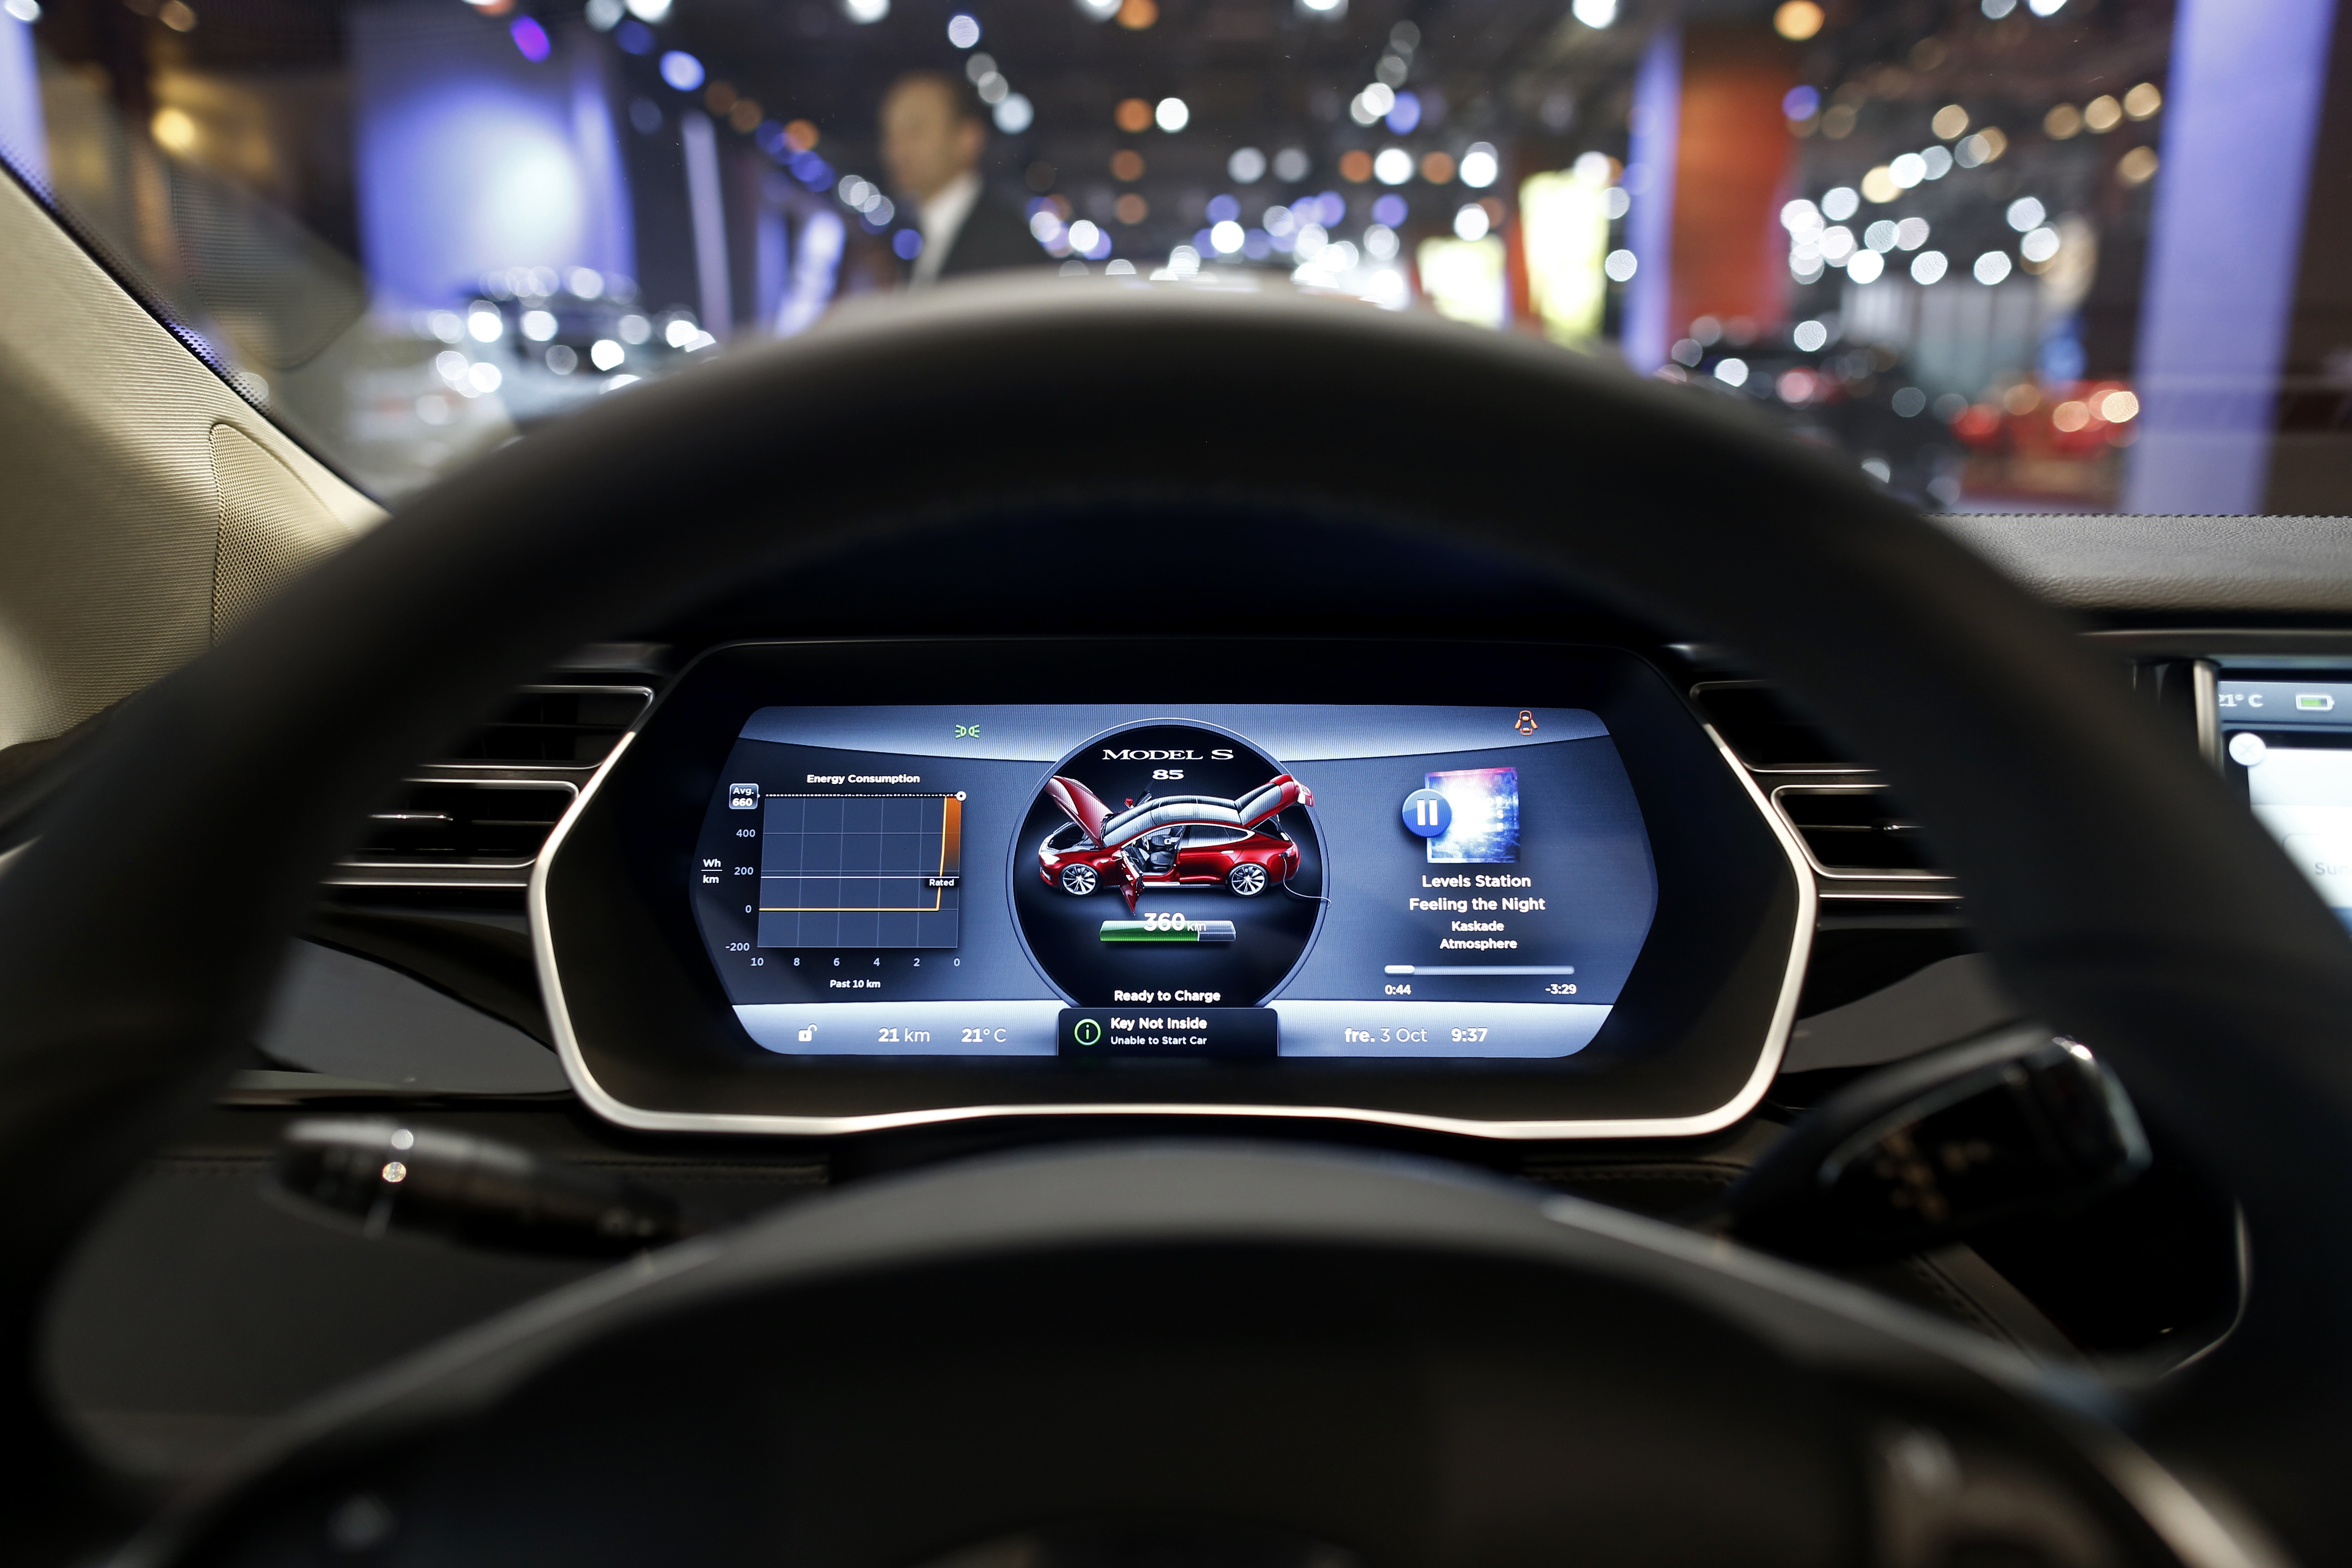 Tesla Reportedly To Unveil Autopilot Cars This Week besides 9 Dash Trim Kit Rhd Audi A3 8l 96 00 5 Door Digital A C likewise Interior further Chevrolet Corvette C4 Convertible 1984 together with 2015audiq7vs2015bmwx6. on audi digital dashboard